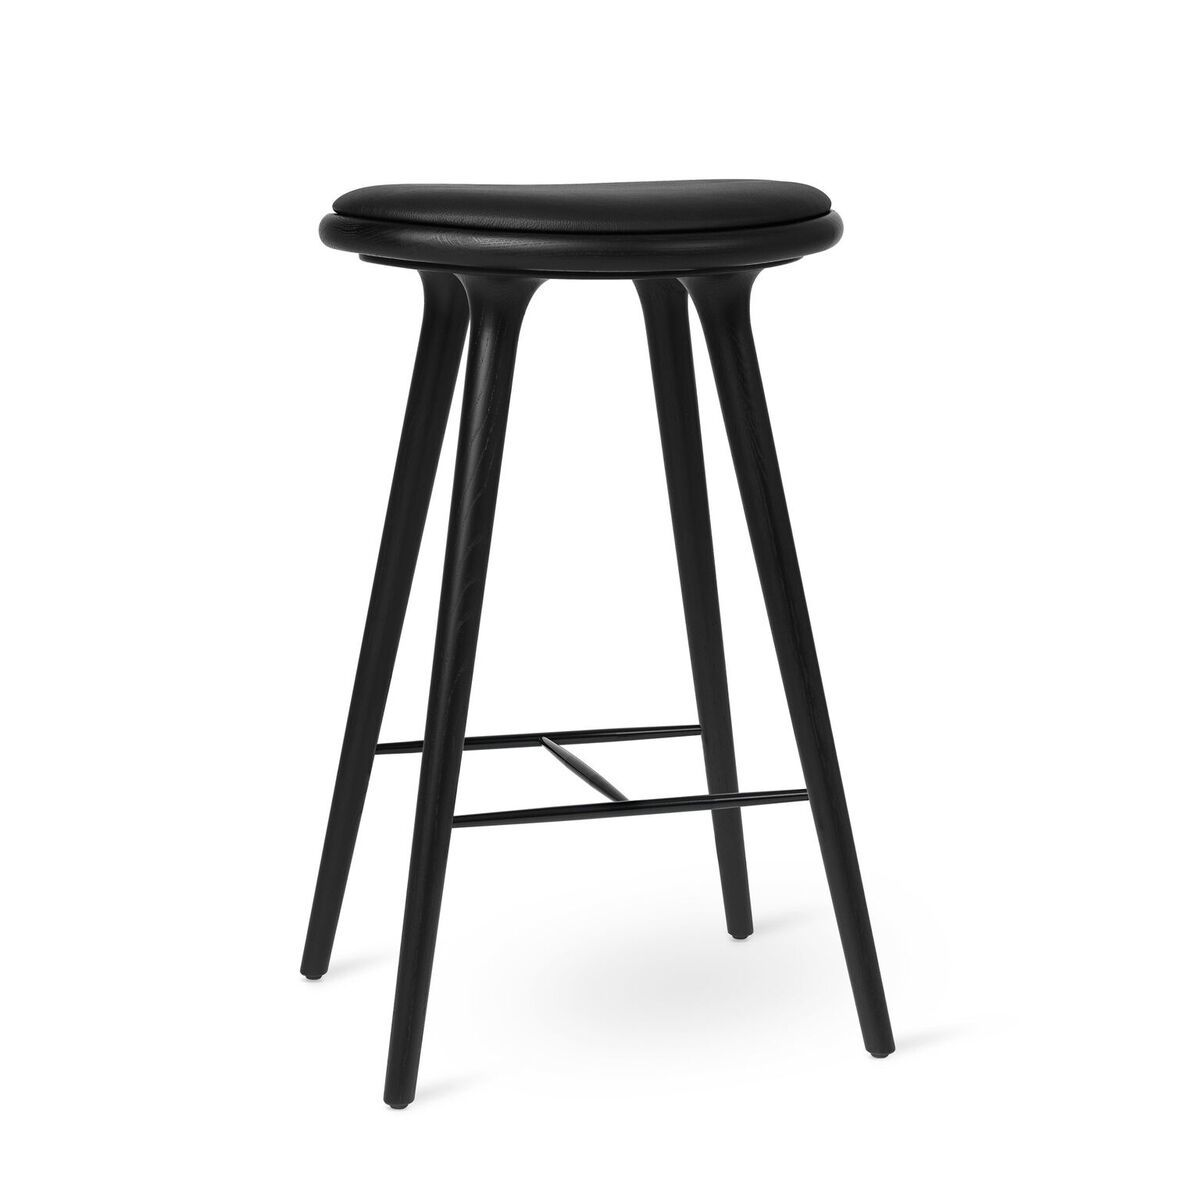 High Stool - Black Stained Oak by Mater.